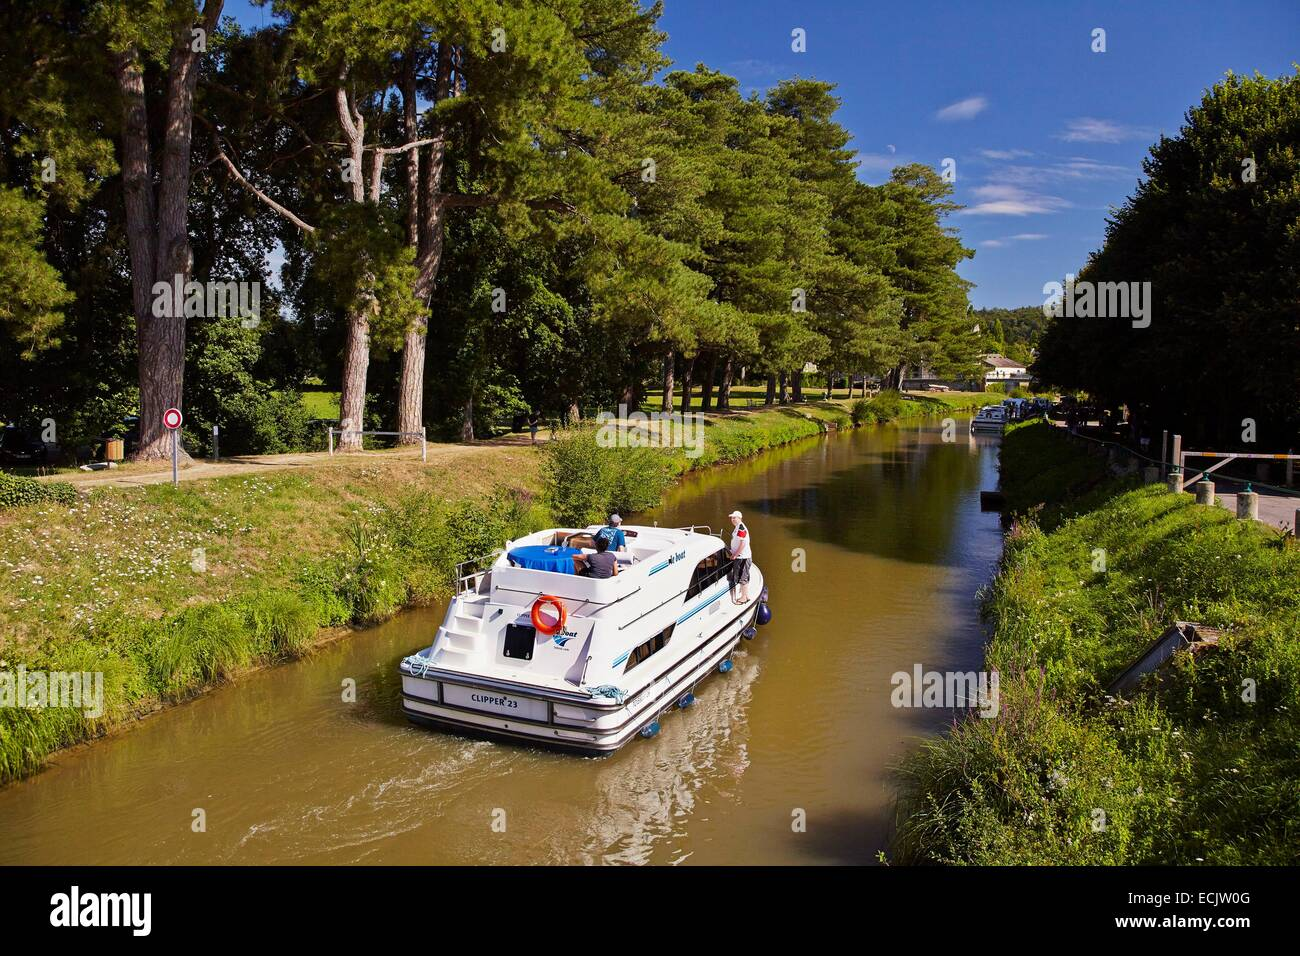 France, Morbihan, Malestroit, Navigation on the canal from Nantes to Brest - Stock Image